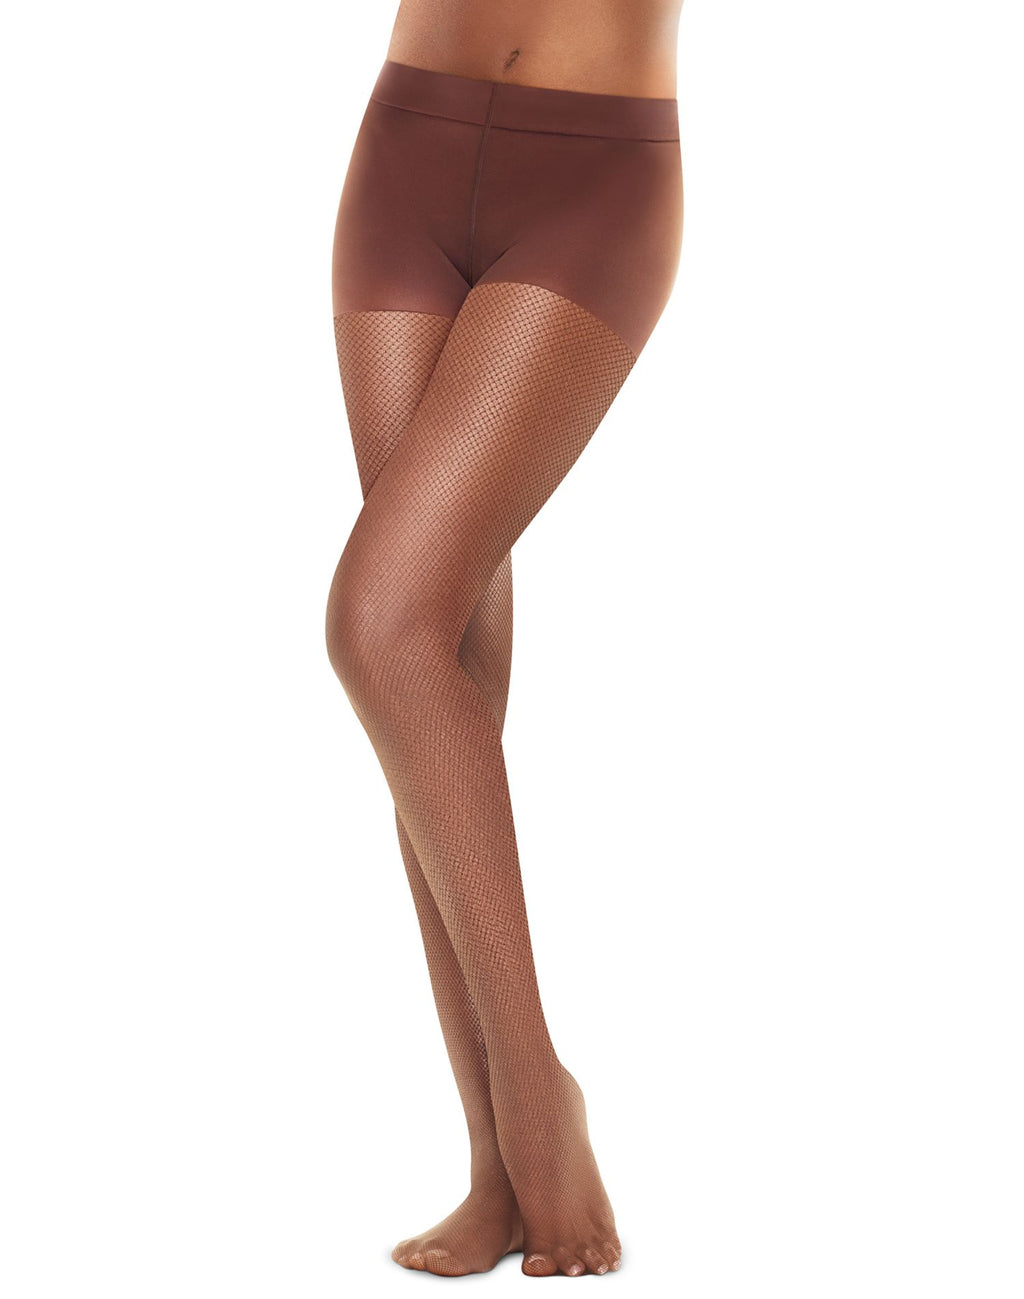 Hanes Womens Perfect Nudes™ Sheer Micro Net Girl Short Tummy Control Hosiery